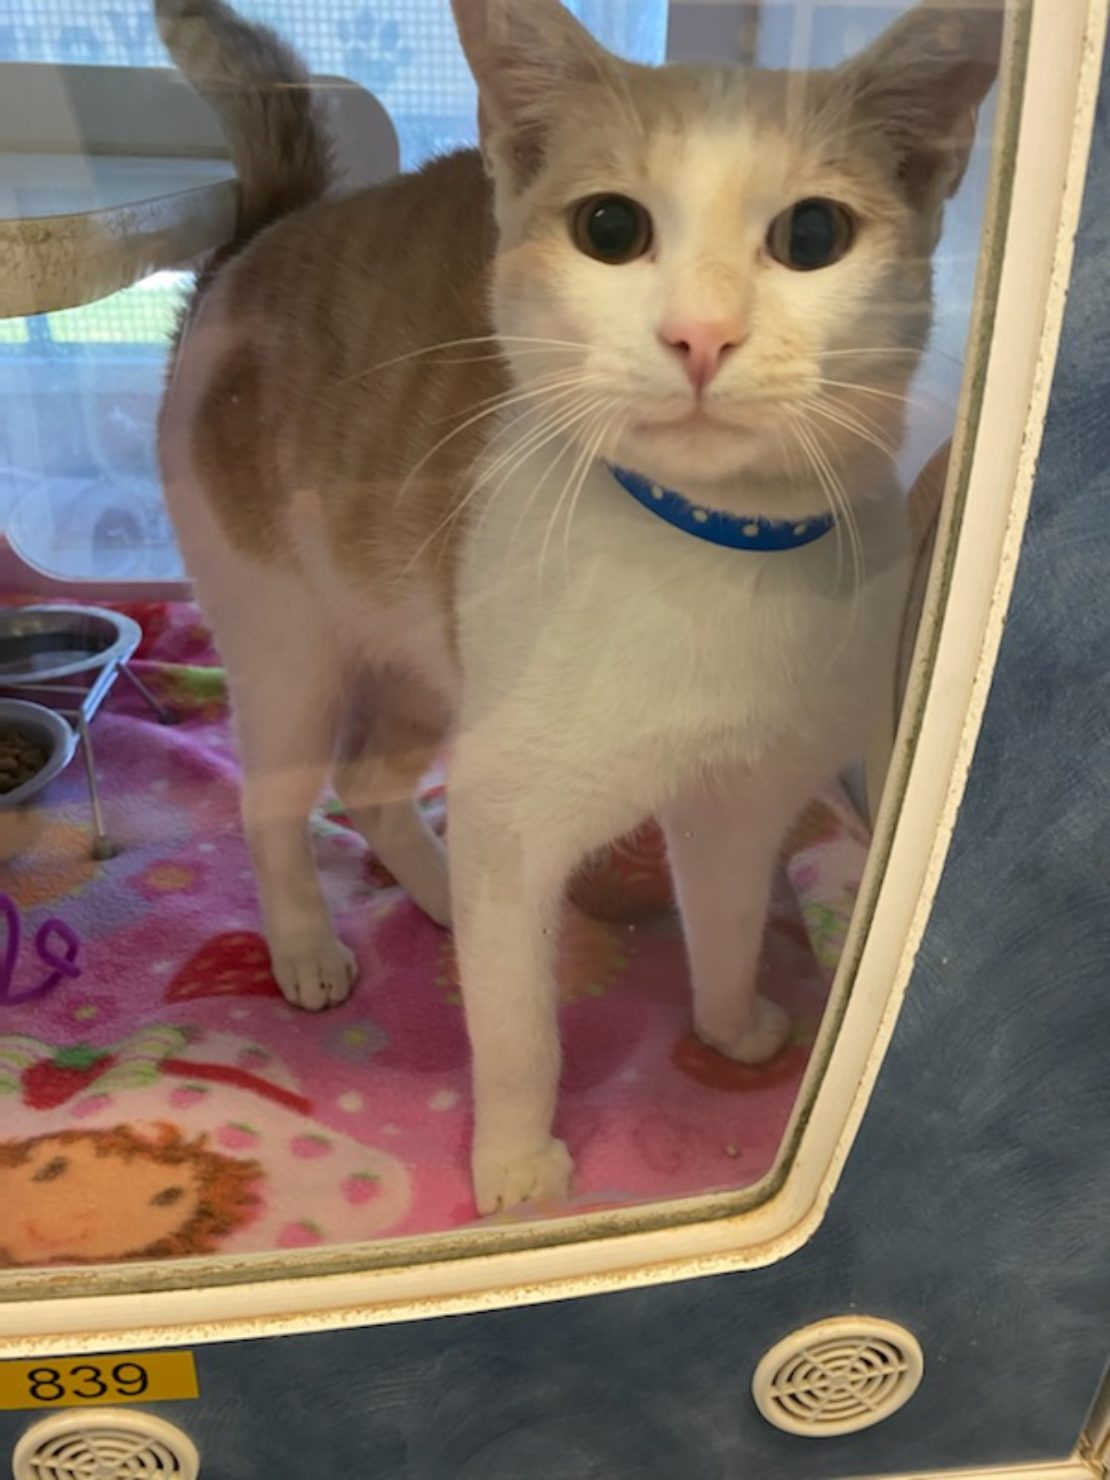 cat with orange mask and saddle, white chest and legs, and blue collar looks out a kennel with a pink blanket on the bottom.